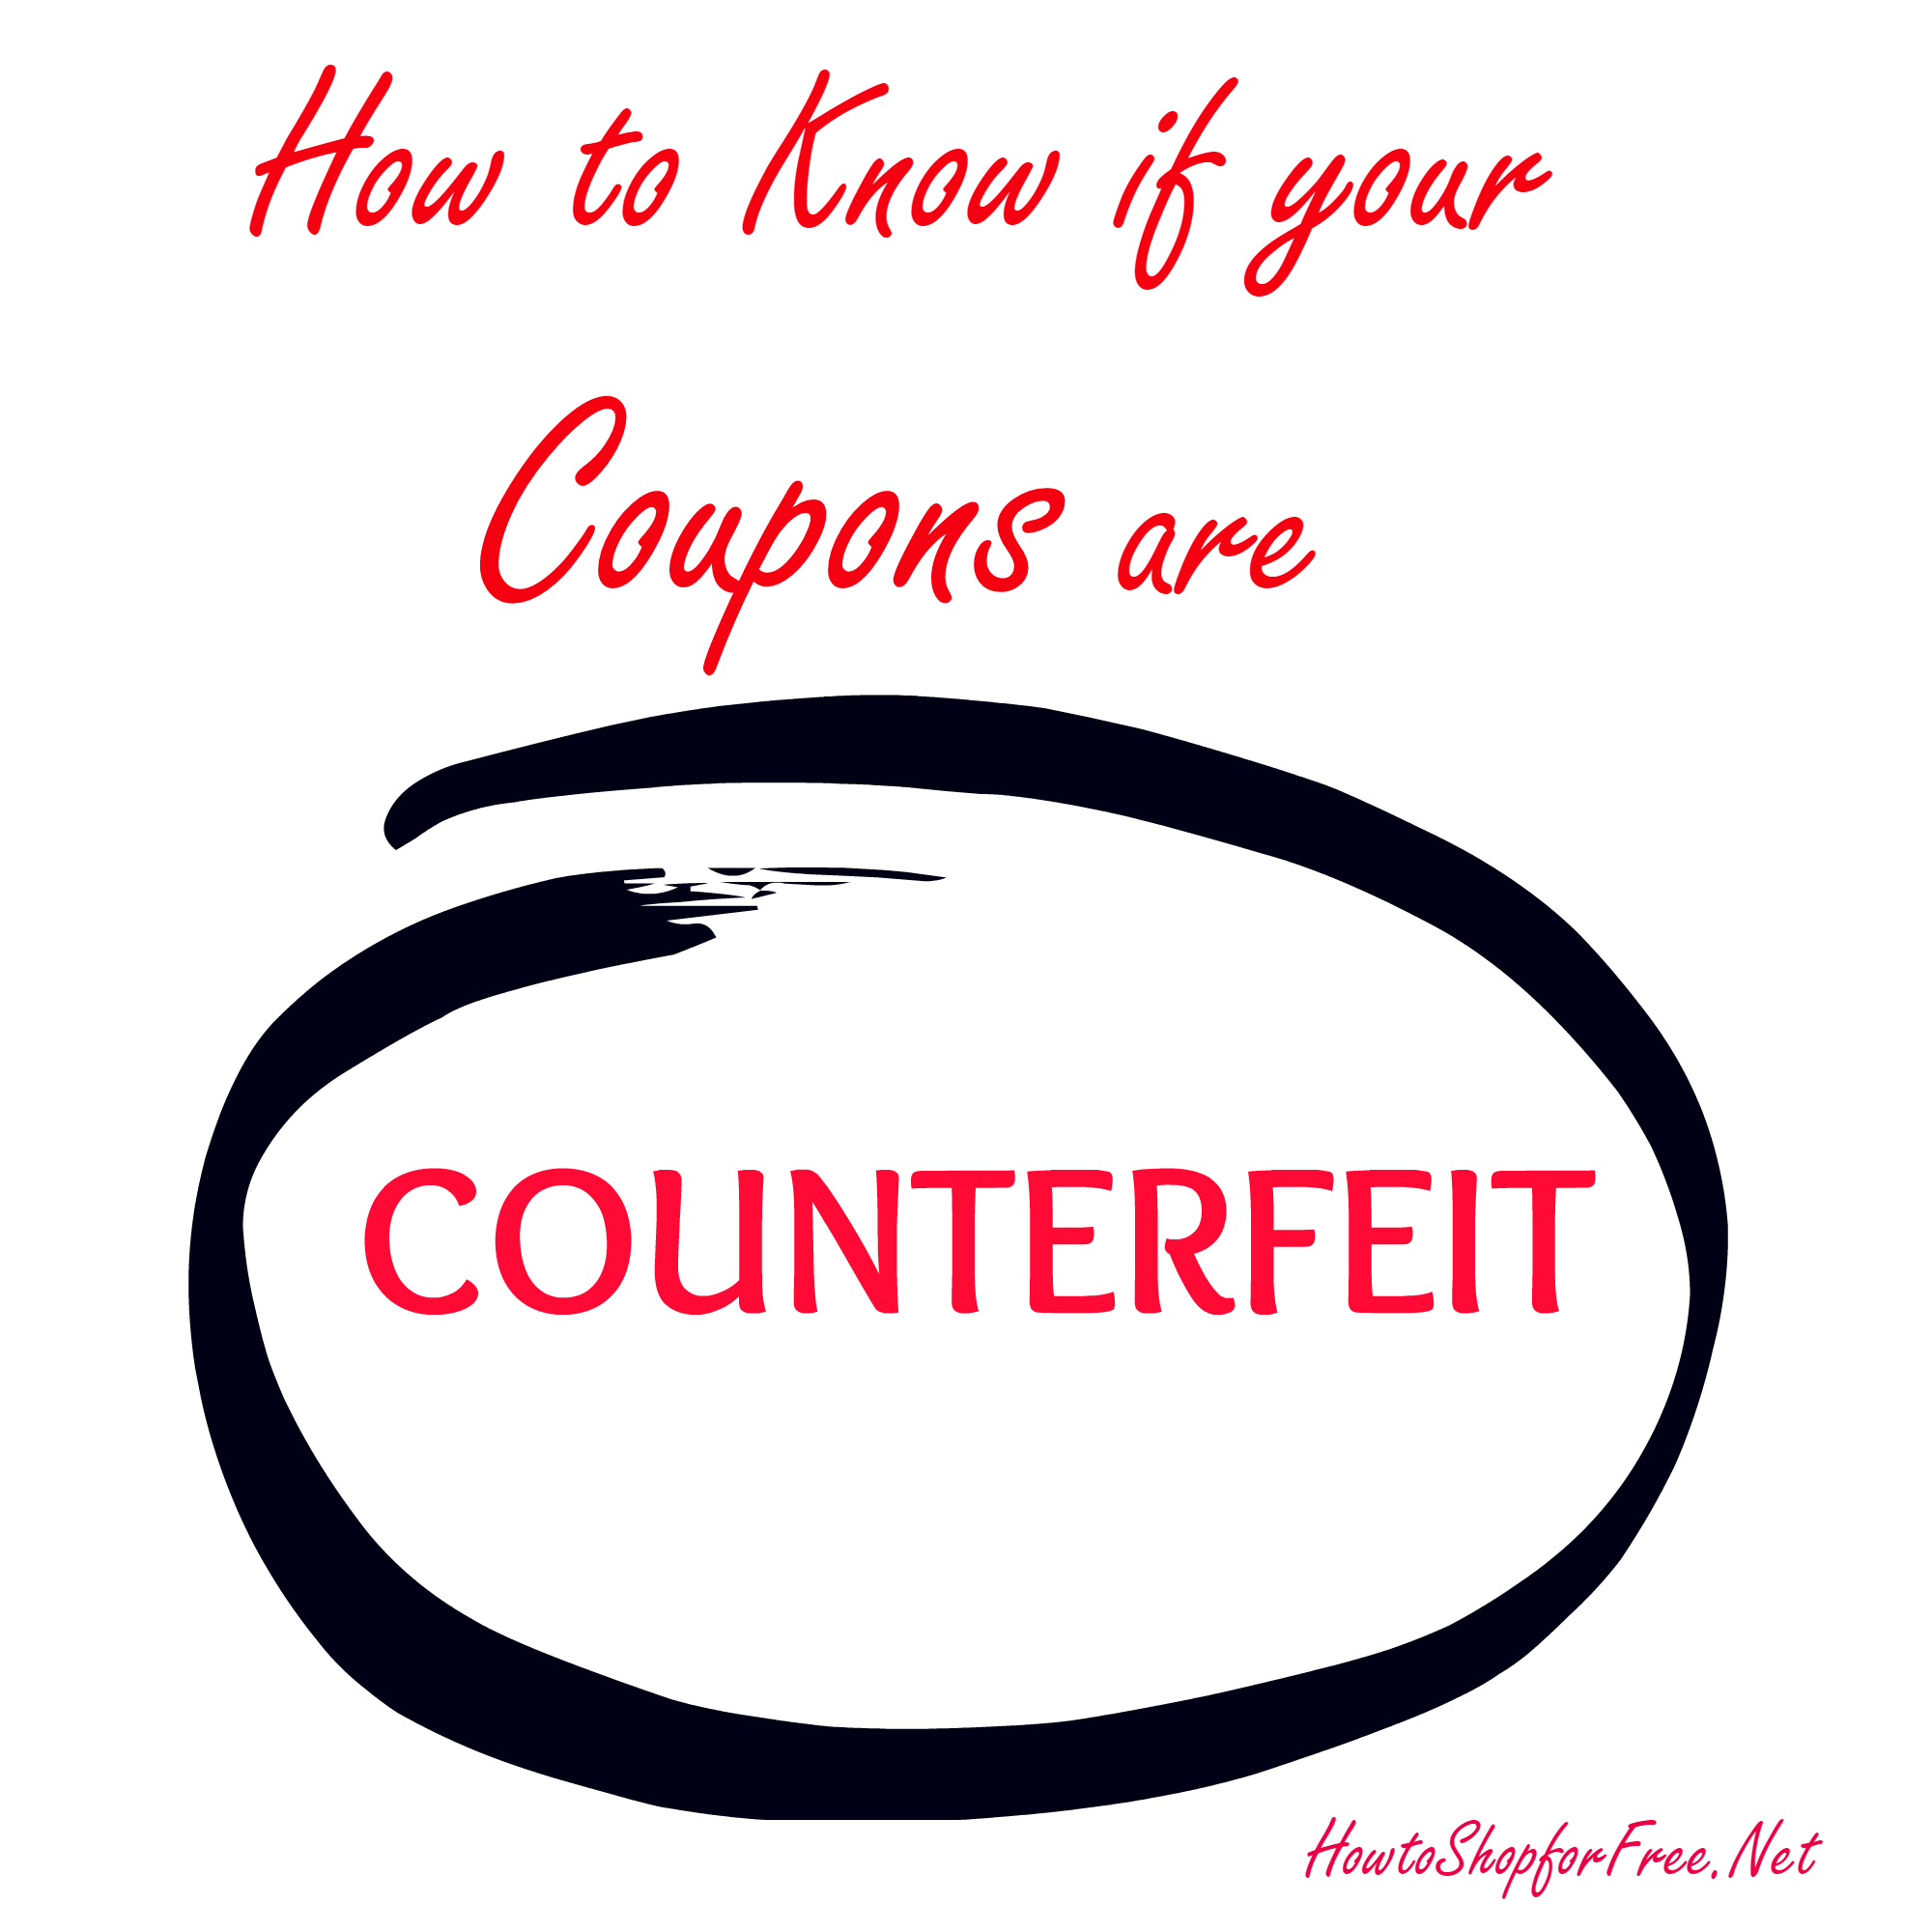 How to Know if your Coupon is Counterfeit | How to Shop For Free